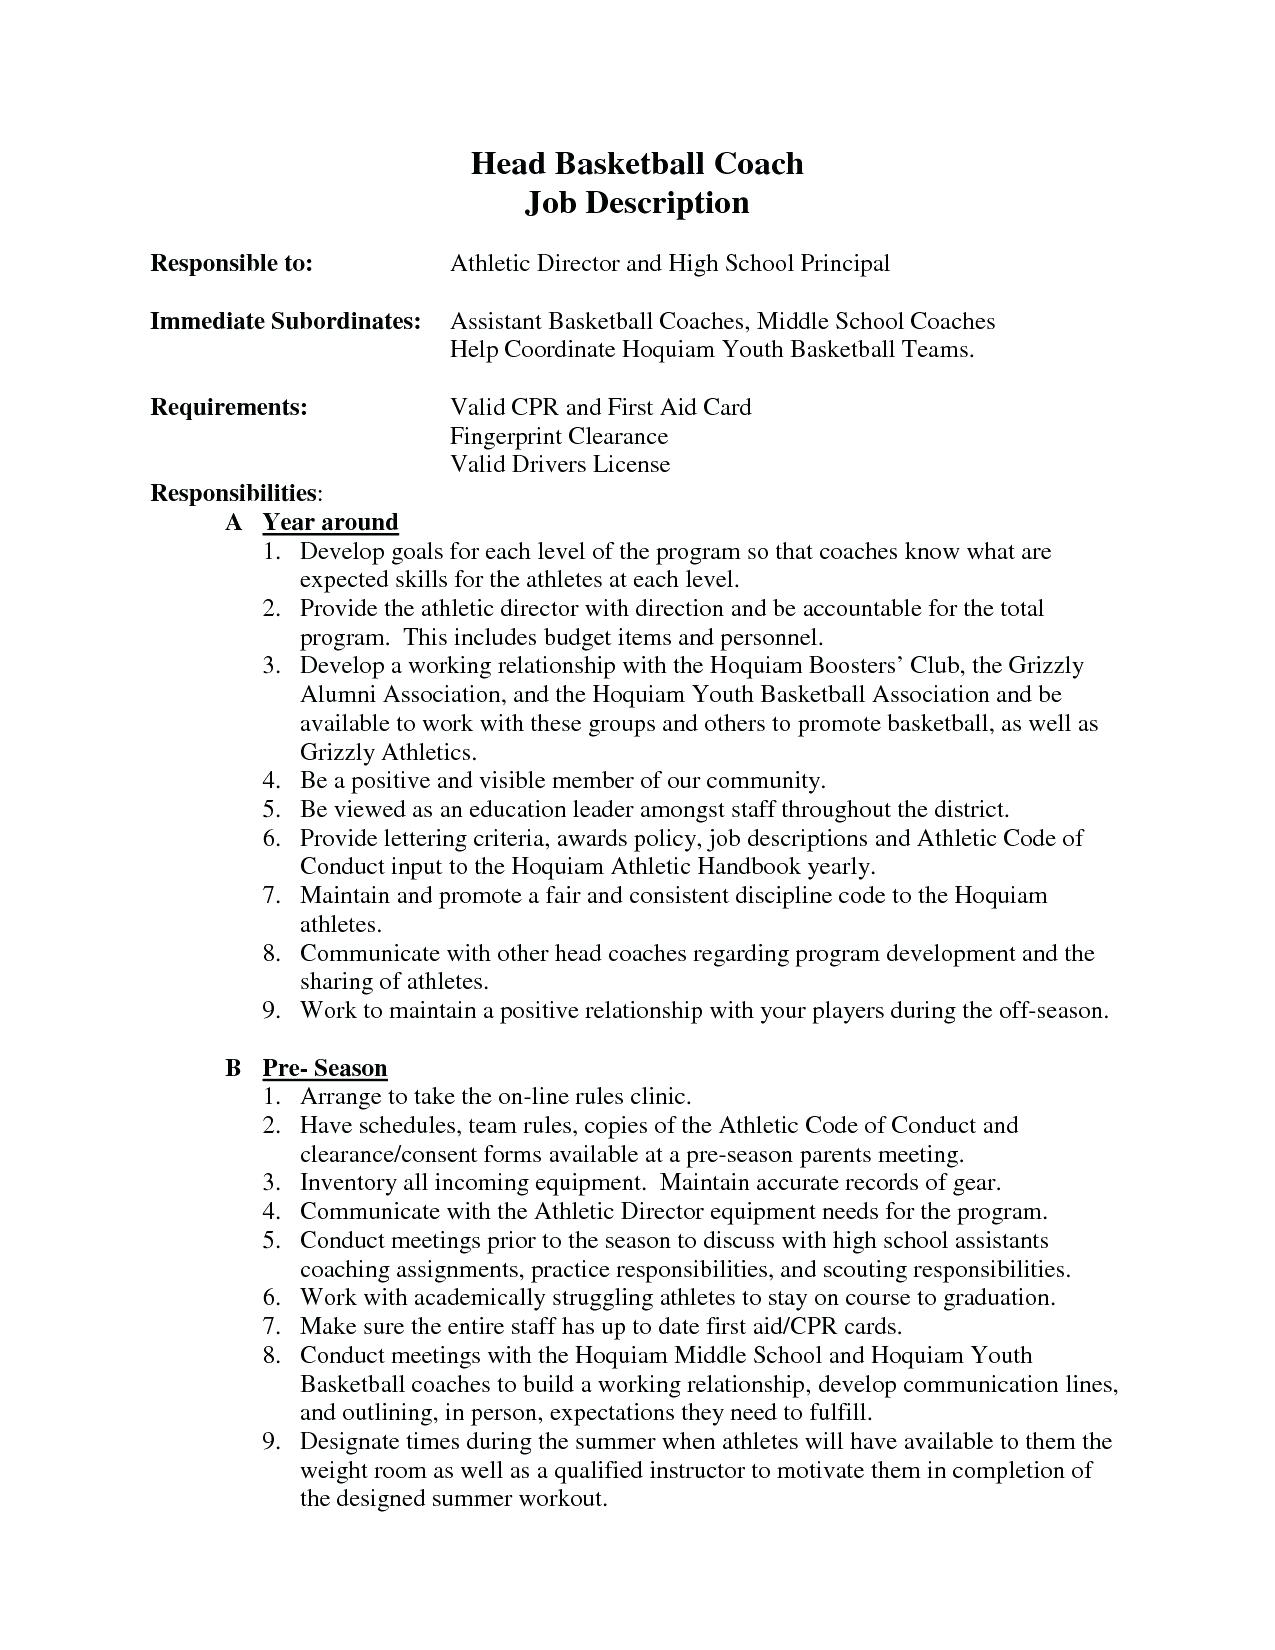 Soccer Coaching Resumes - Coaching Resume Basketball Coach Templates soccer format Job Cover